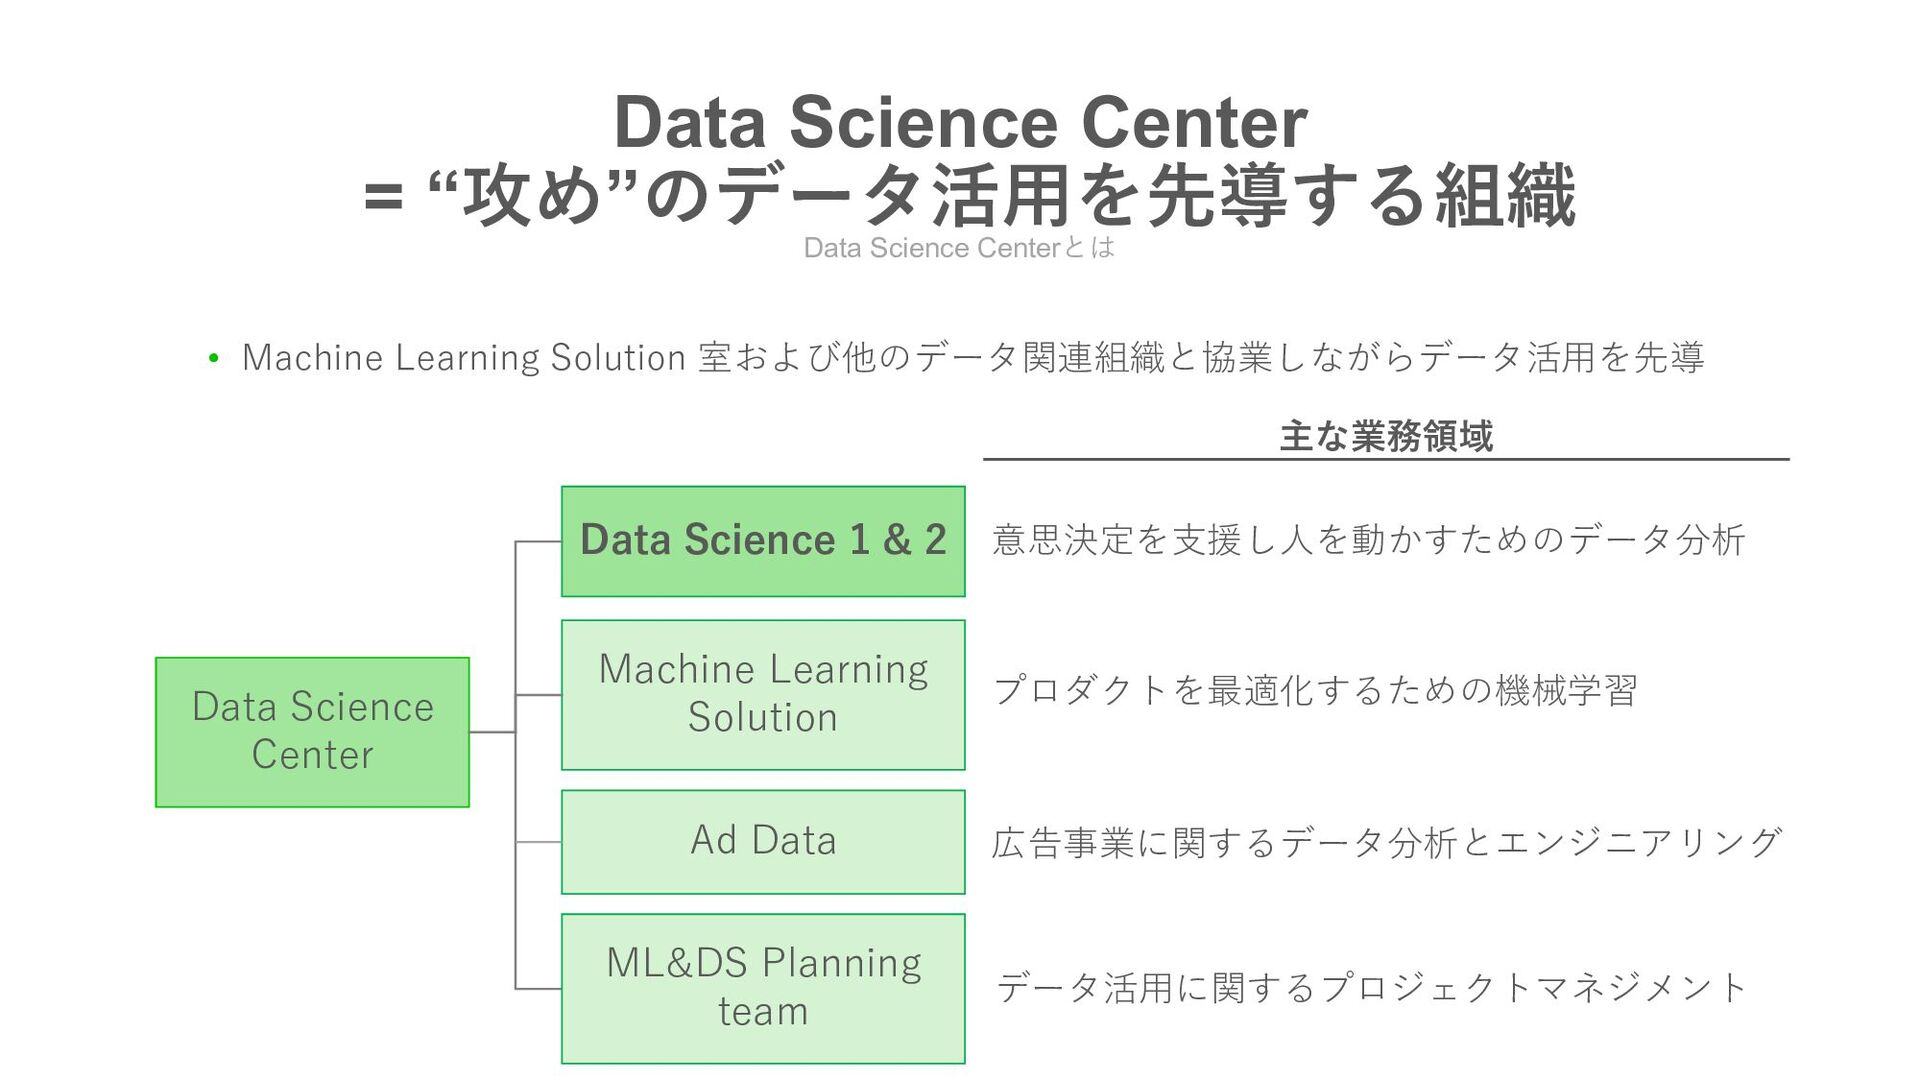 "Data Science Centerとは DATA SCIENCE CENTER = ""攻め..."